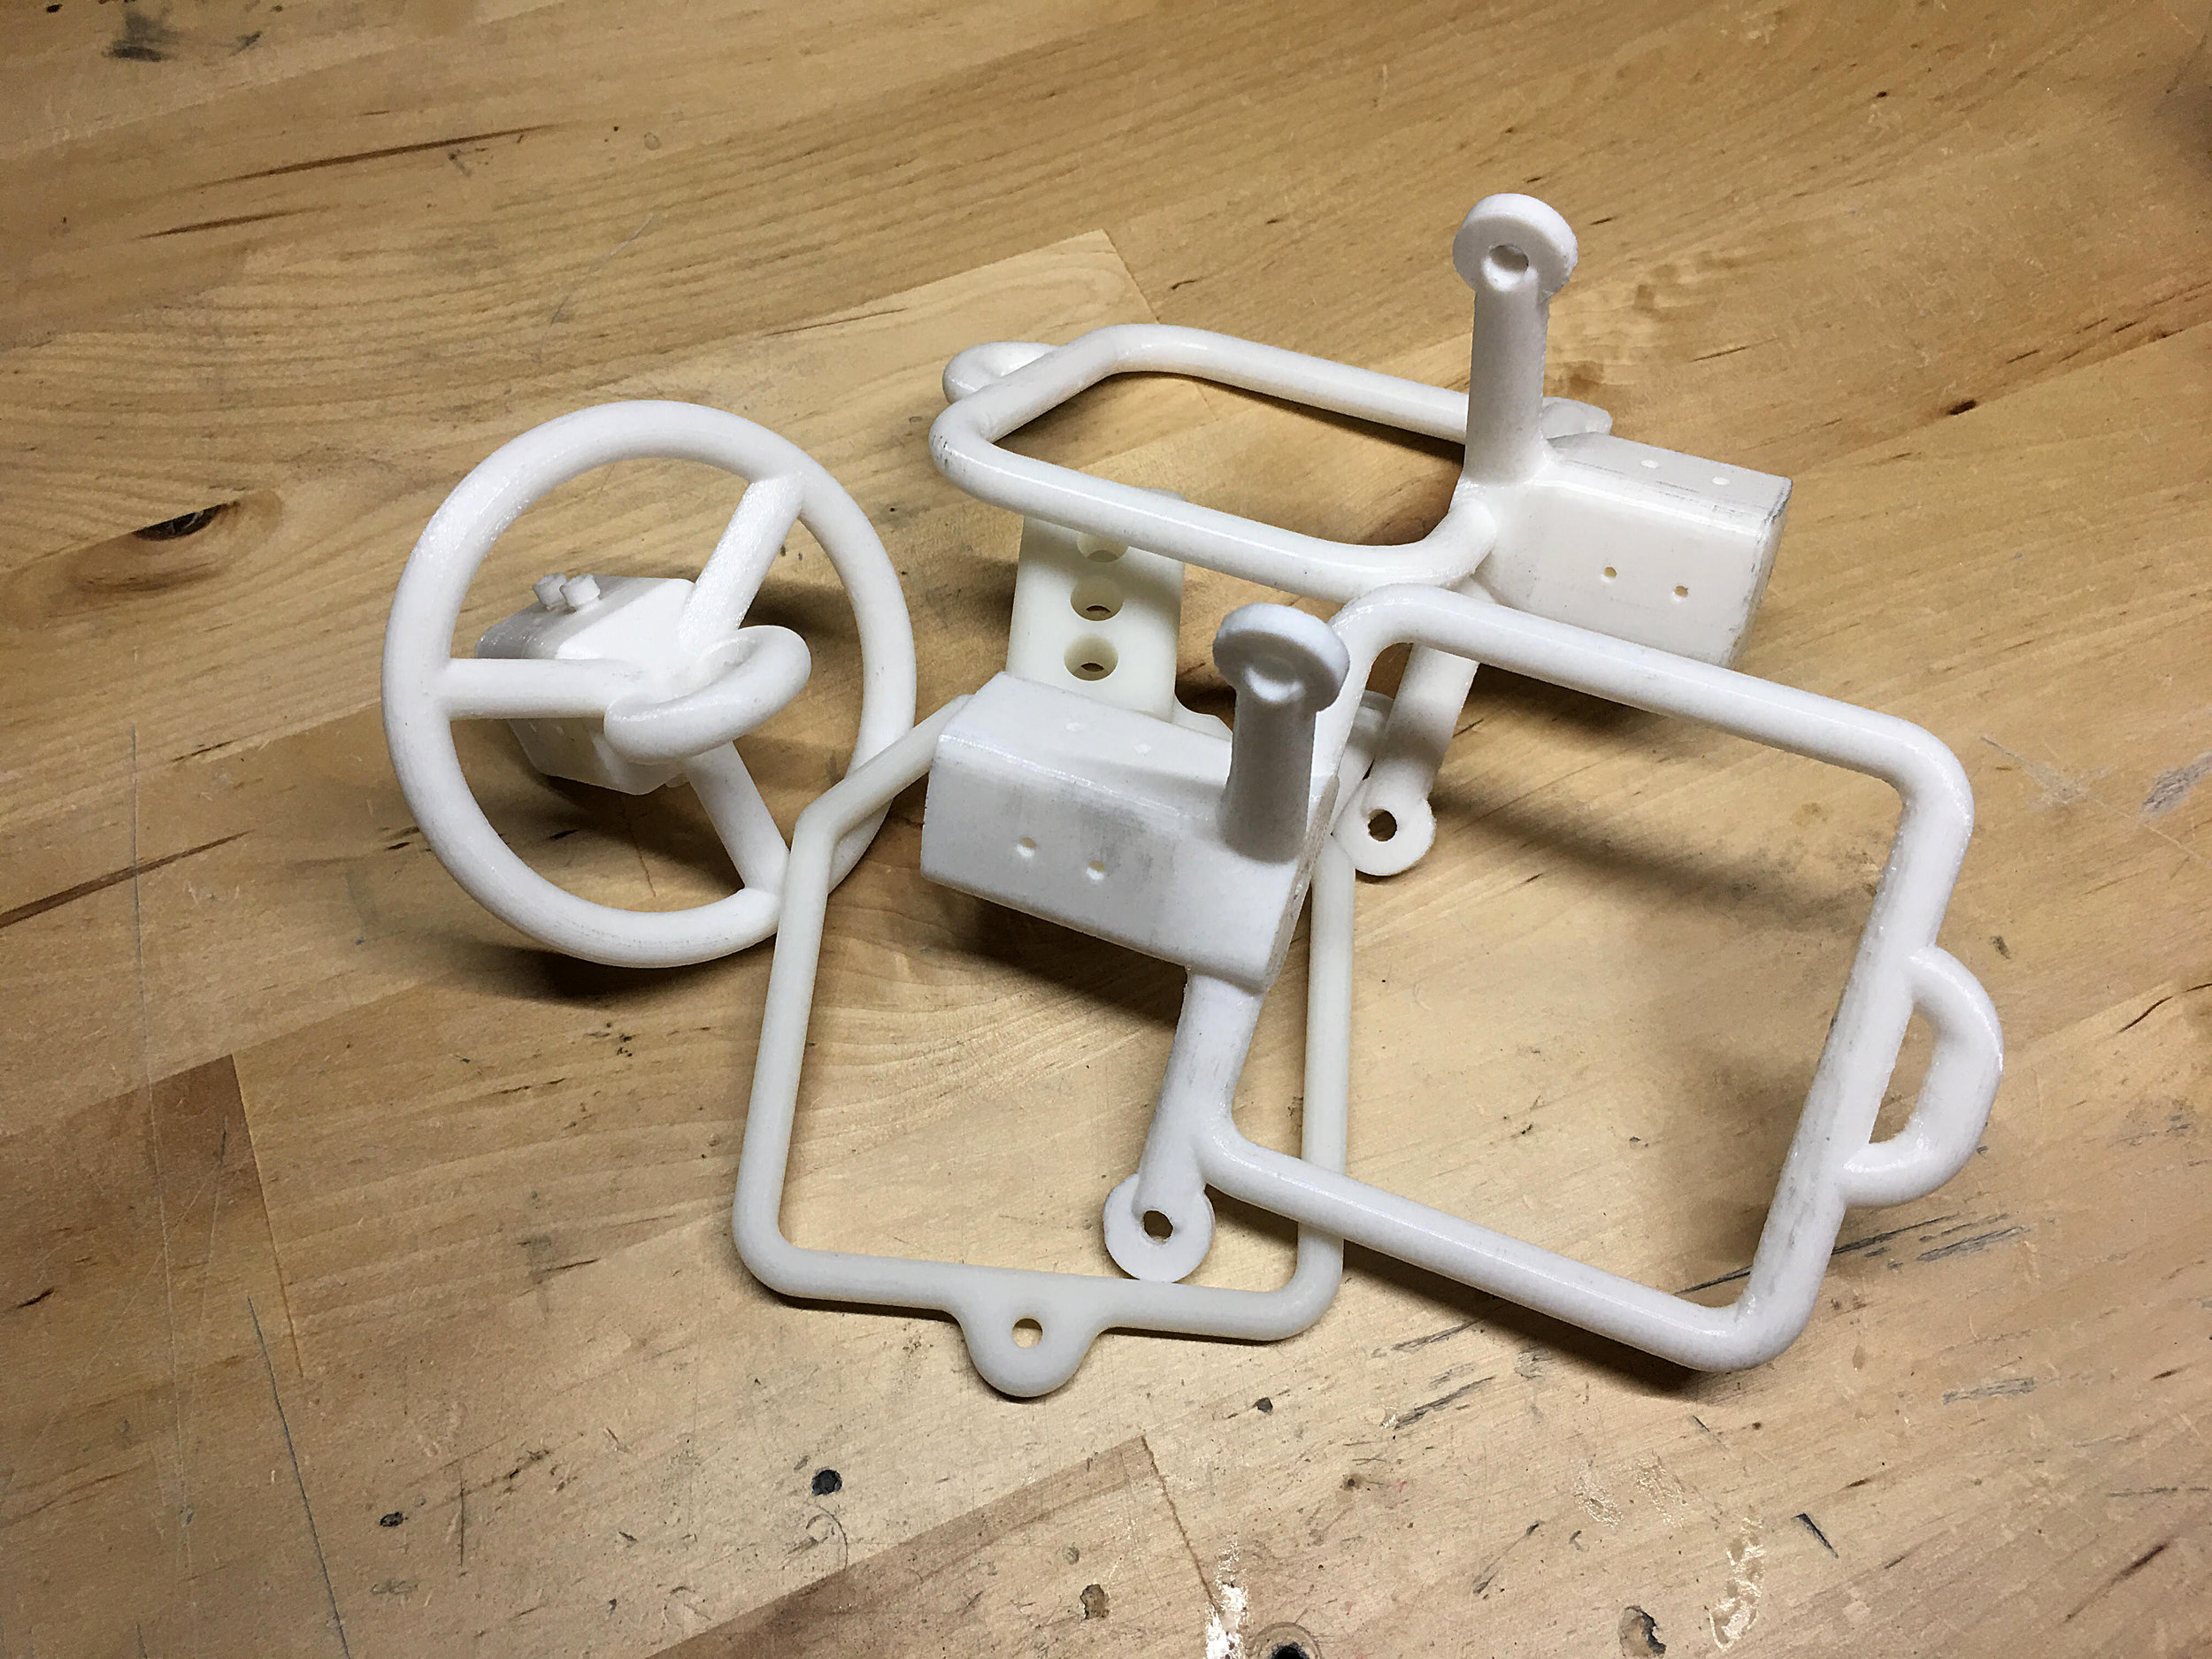 If at first you don't succeed... iterate! These are 3D-printed design versions that failed.